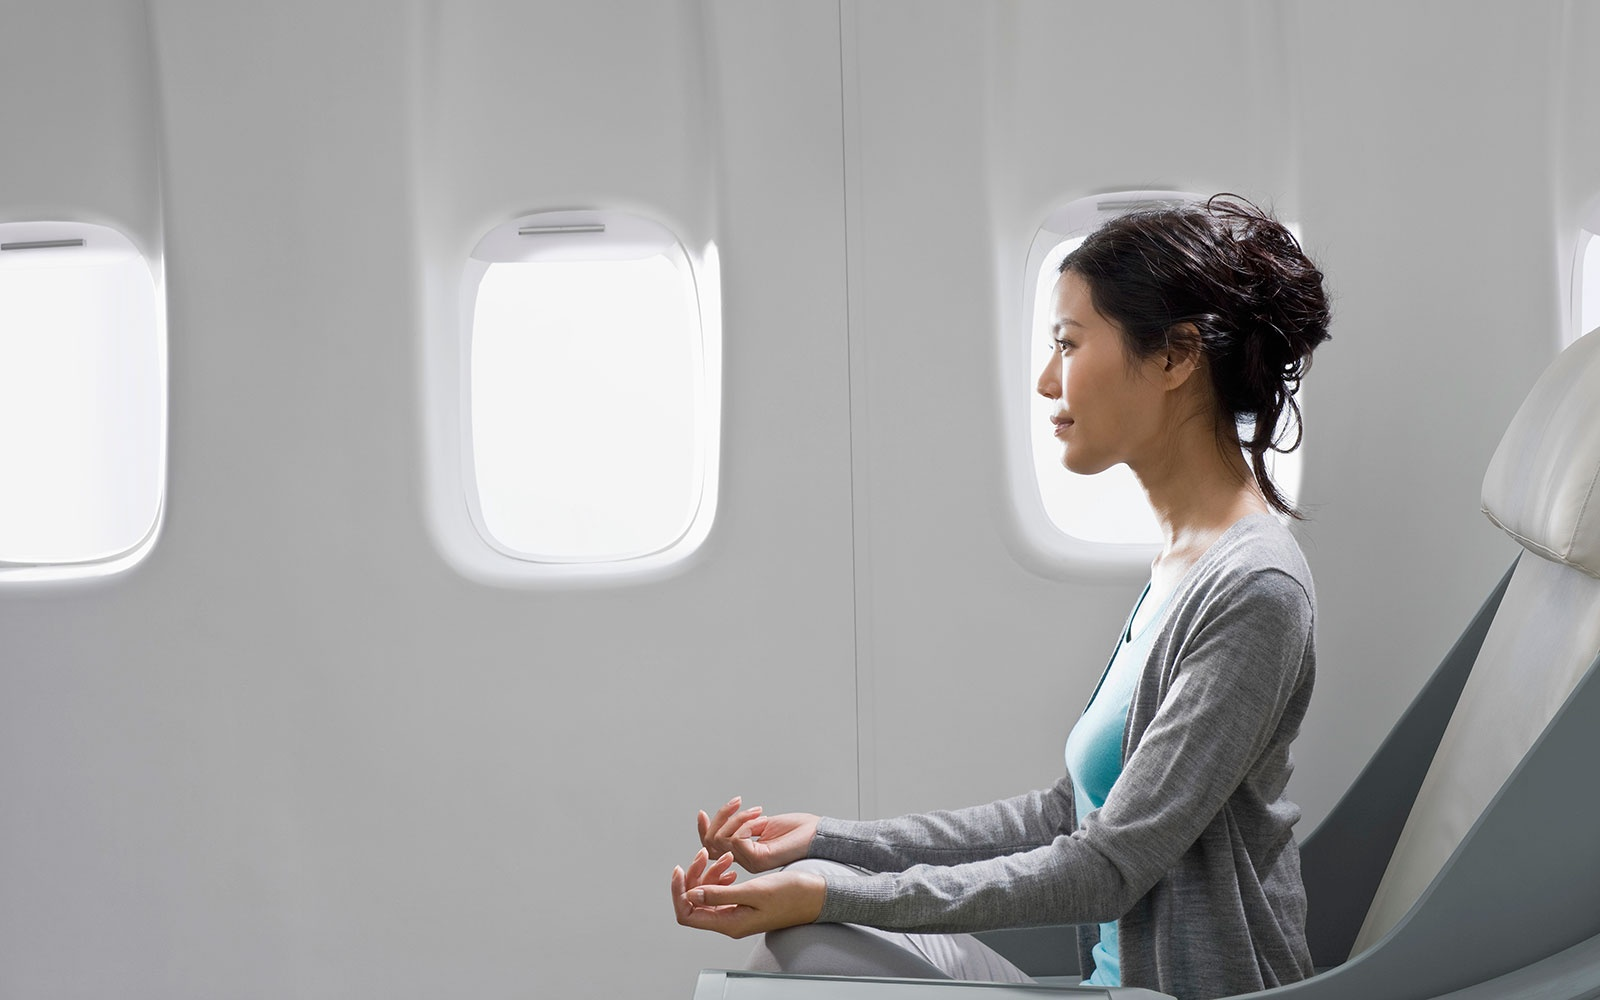 woman mediating on a flight